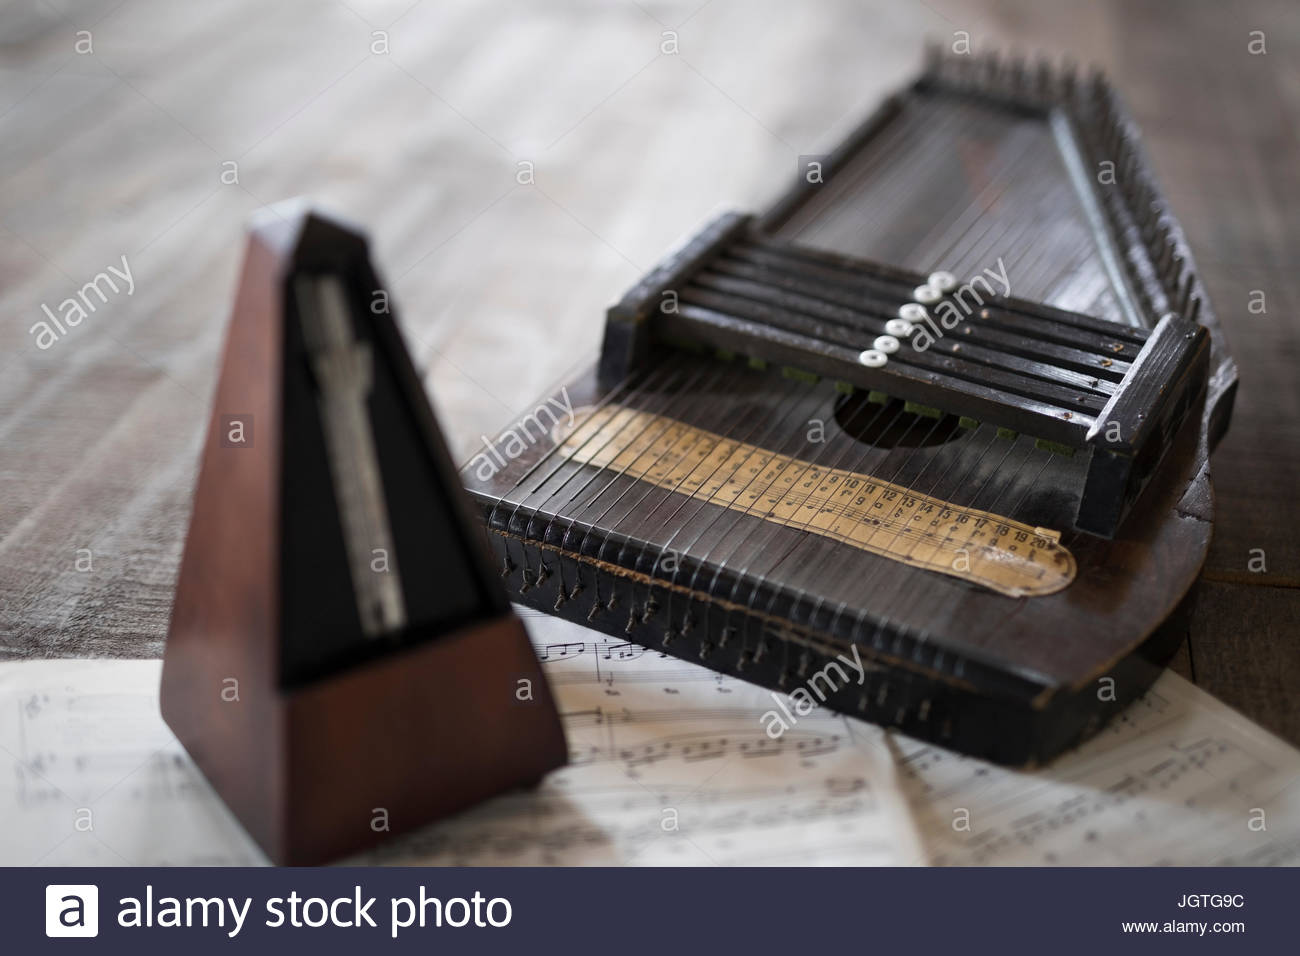 Still life vintage metronome and zither on sheet music Stock Photo